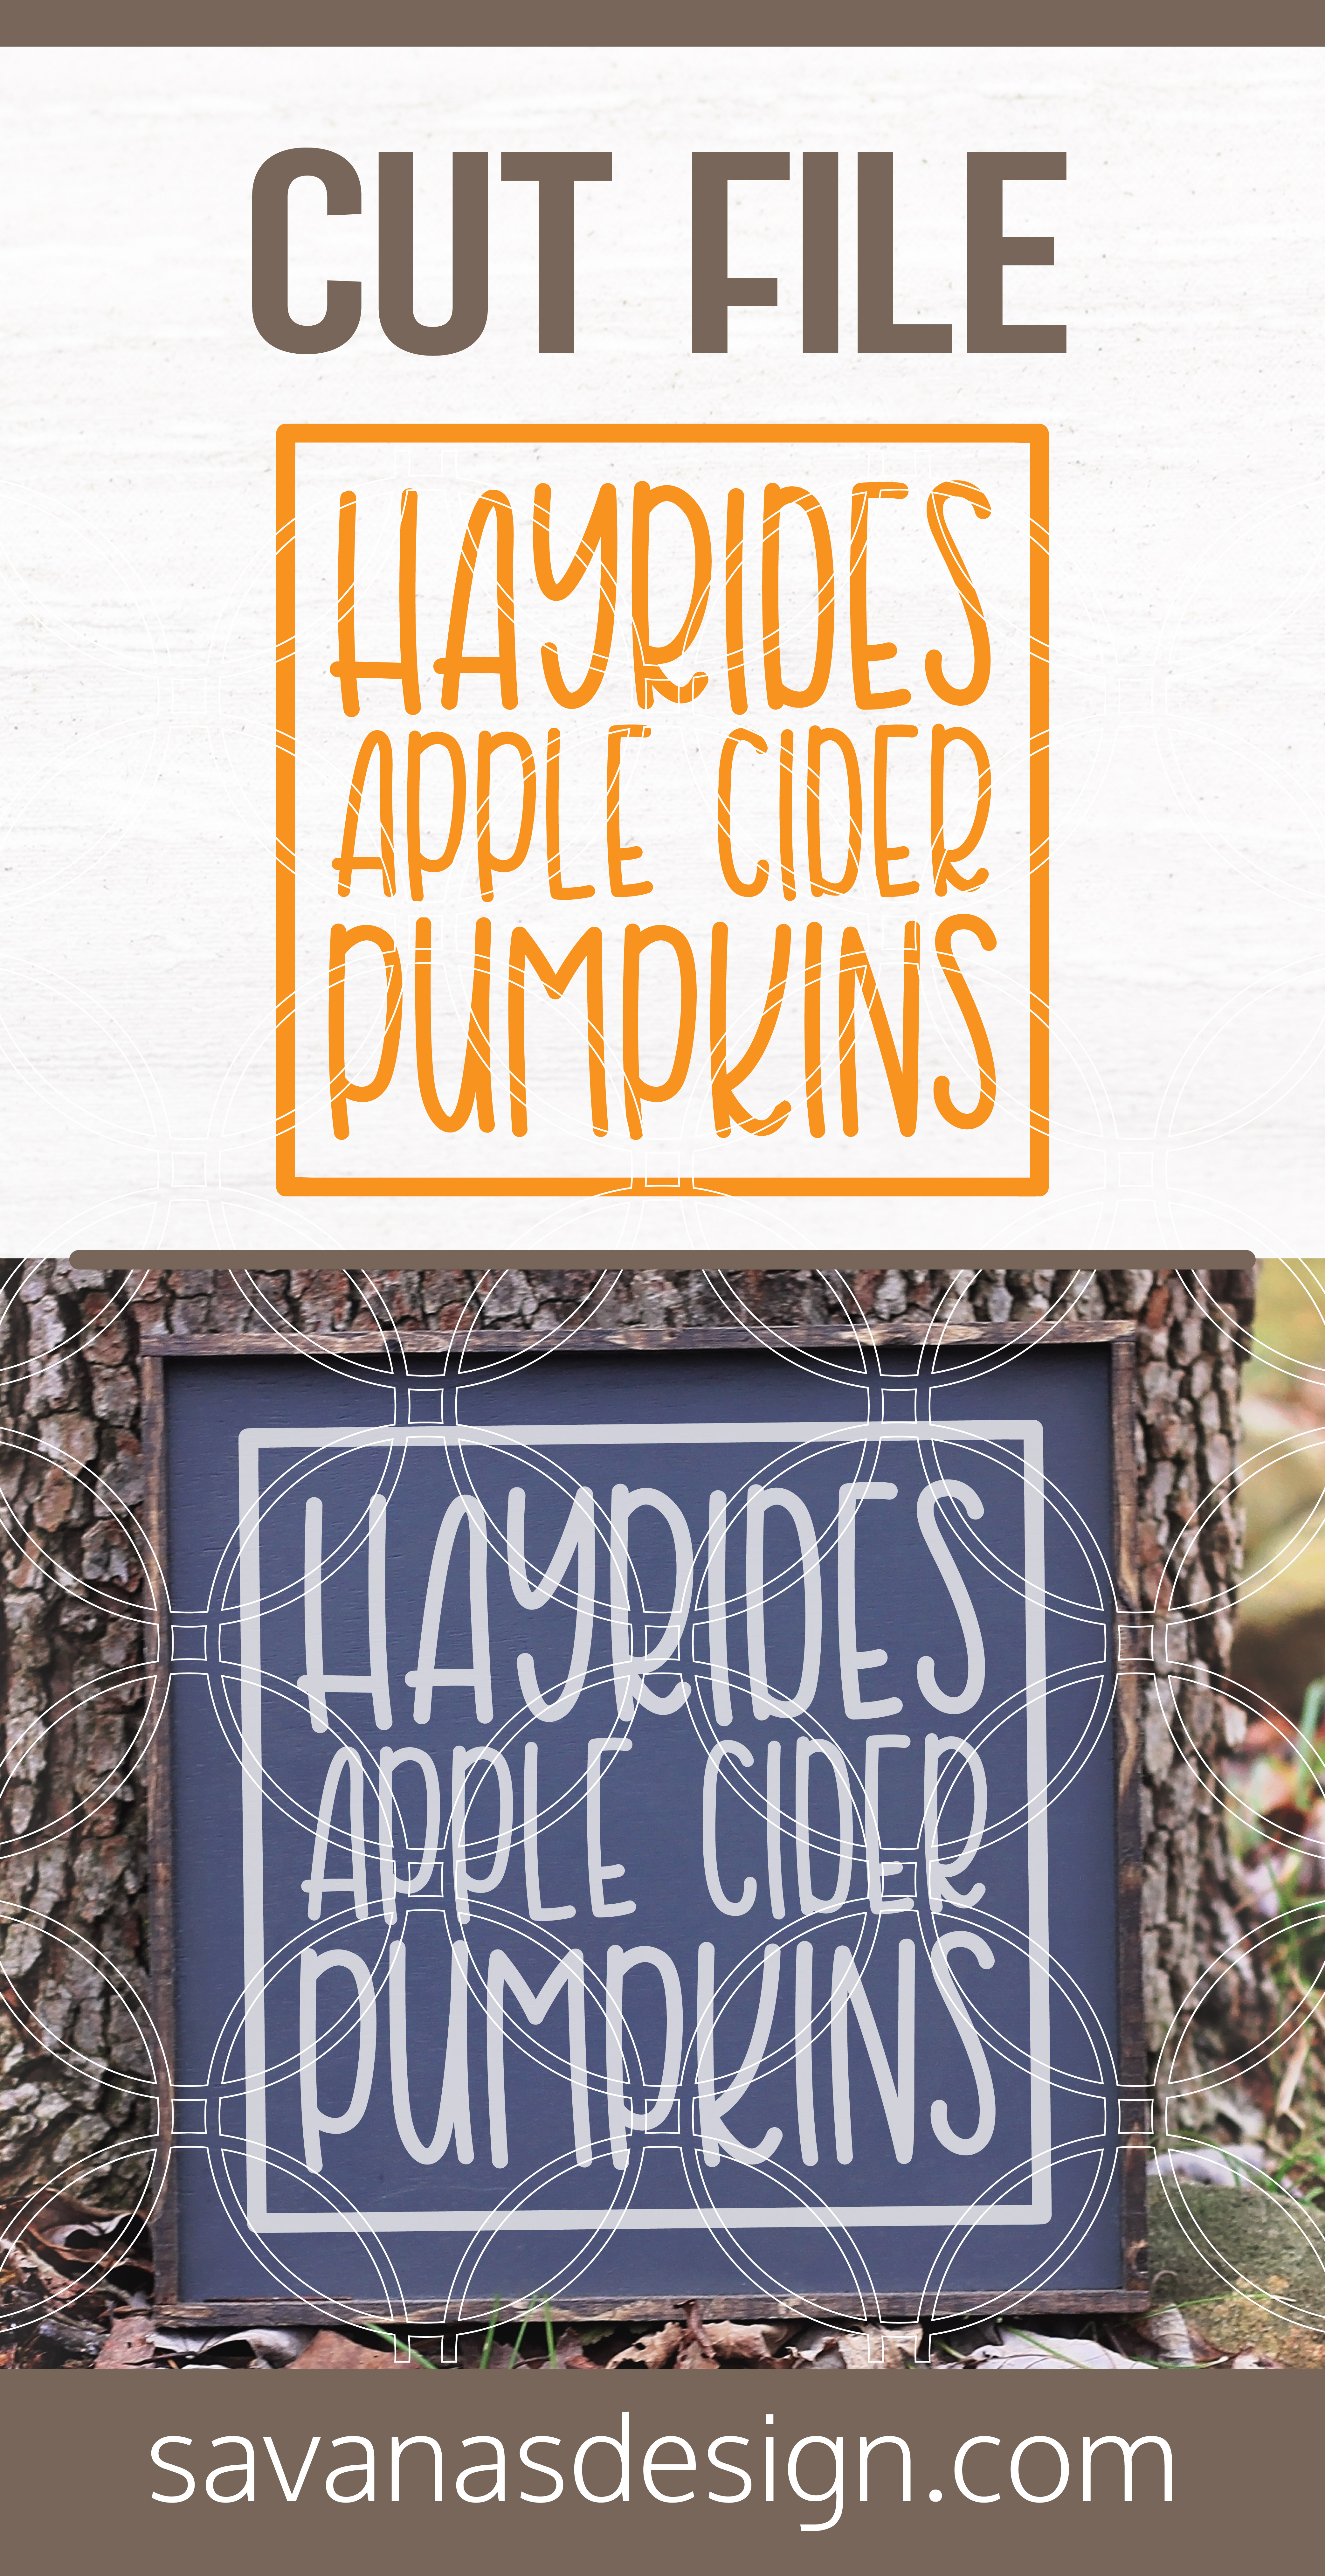 Hayrides Apple Cider Pumpkins Svg Svg Eps Png Dxf Cut Files For Cricut And Silhouette Cameo By Savanasdesign